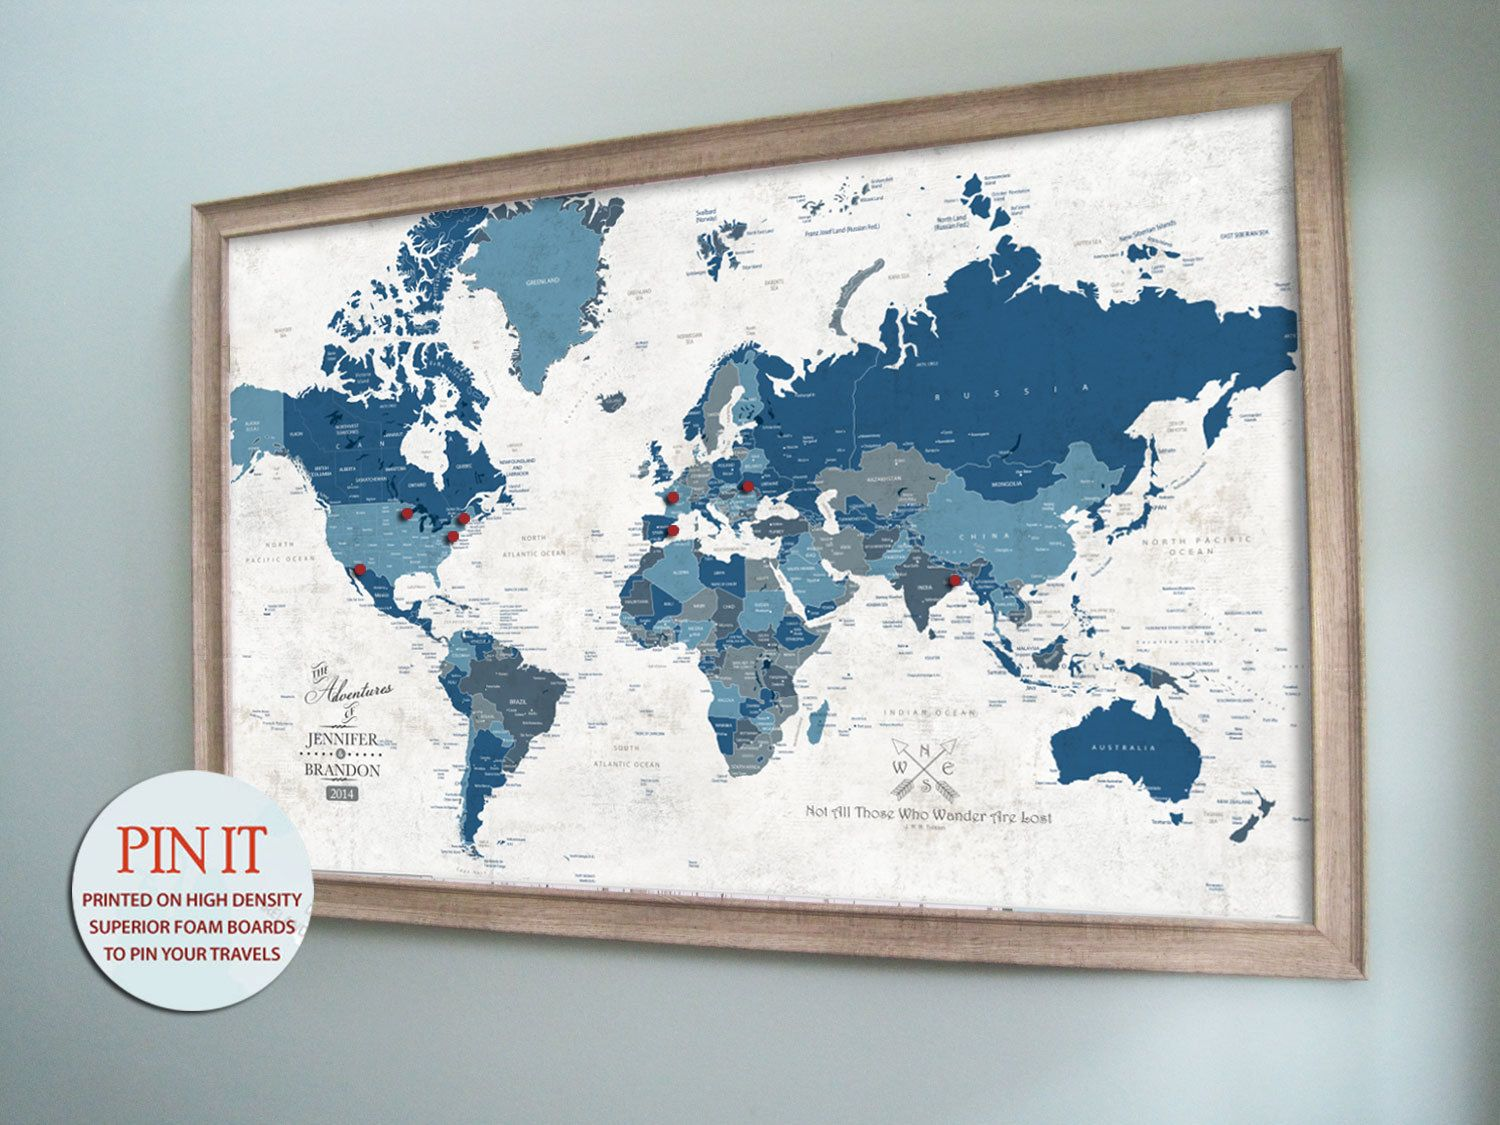 Large map framed detailed map 30x45 inches world by texturedink large map framed detailed map 30x45 inches world by texturedink 37900 gumiabroncs Gallery